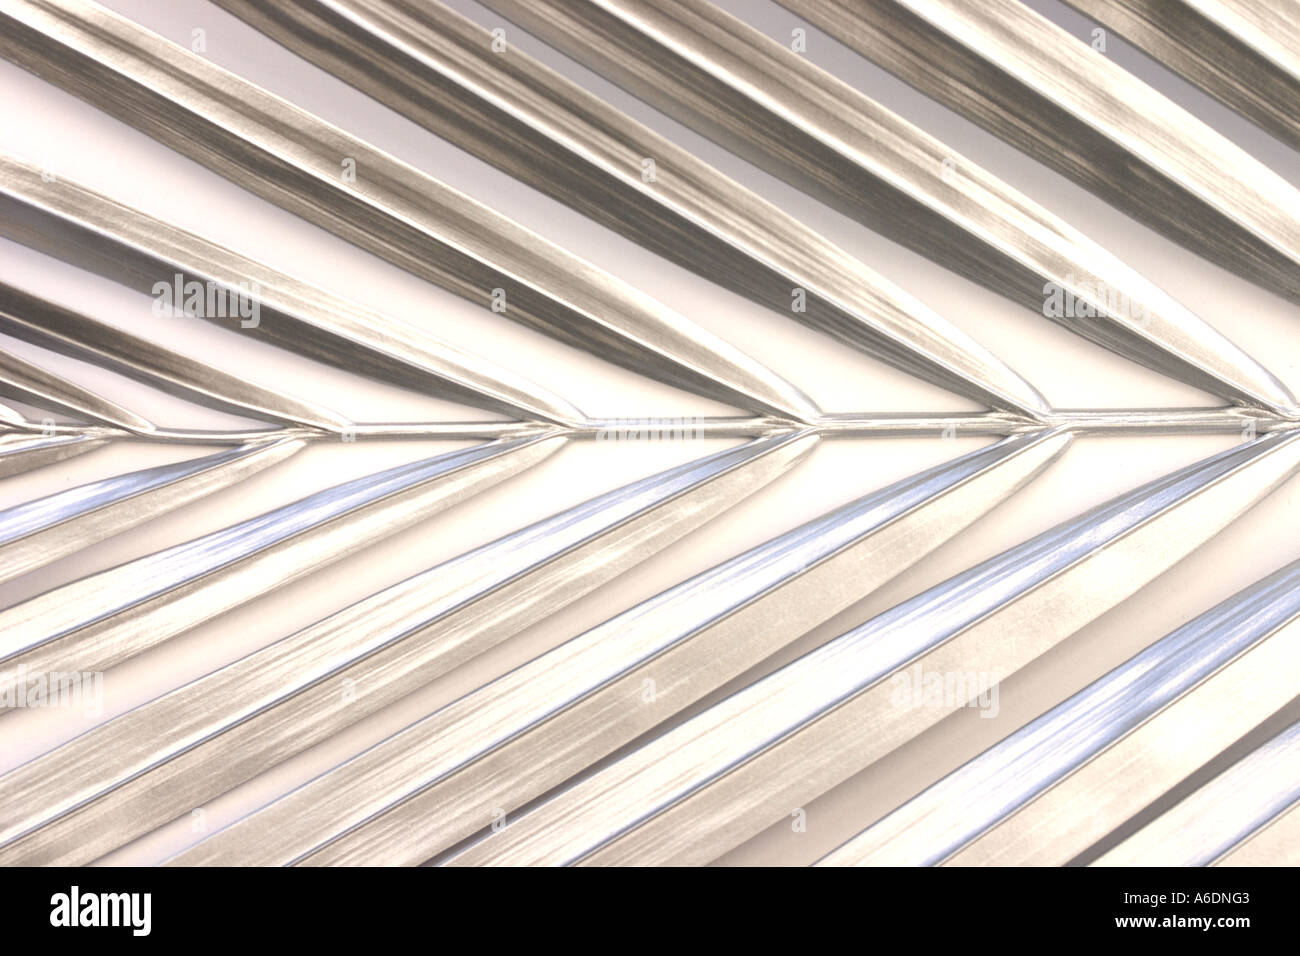 SILVER PALM FROND   WHITE BACKGROUND HORIZONTAL BAPDB5984 - Stock Image